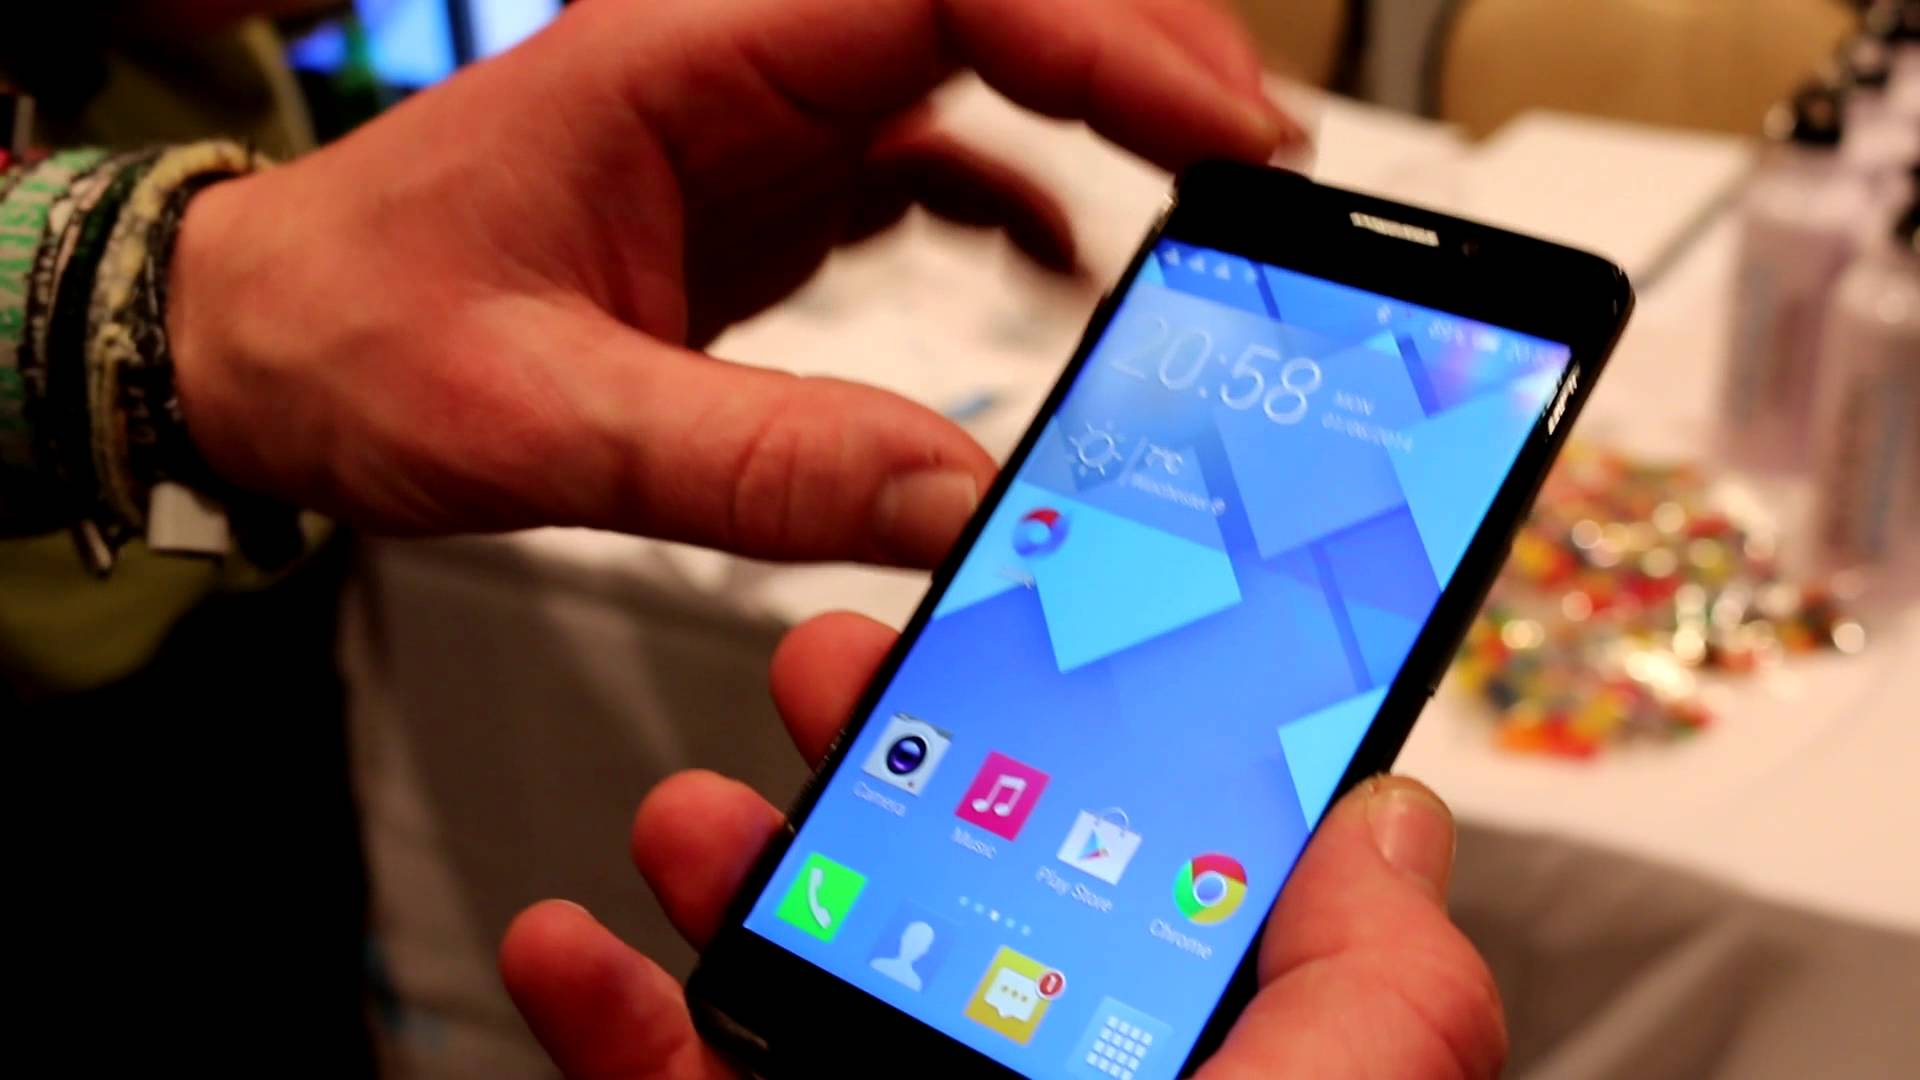 CES 2014: Alcatel One Touch Idol X Plus Octa-Core Smartphone im Hands-on